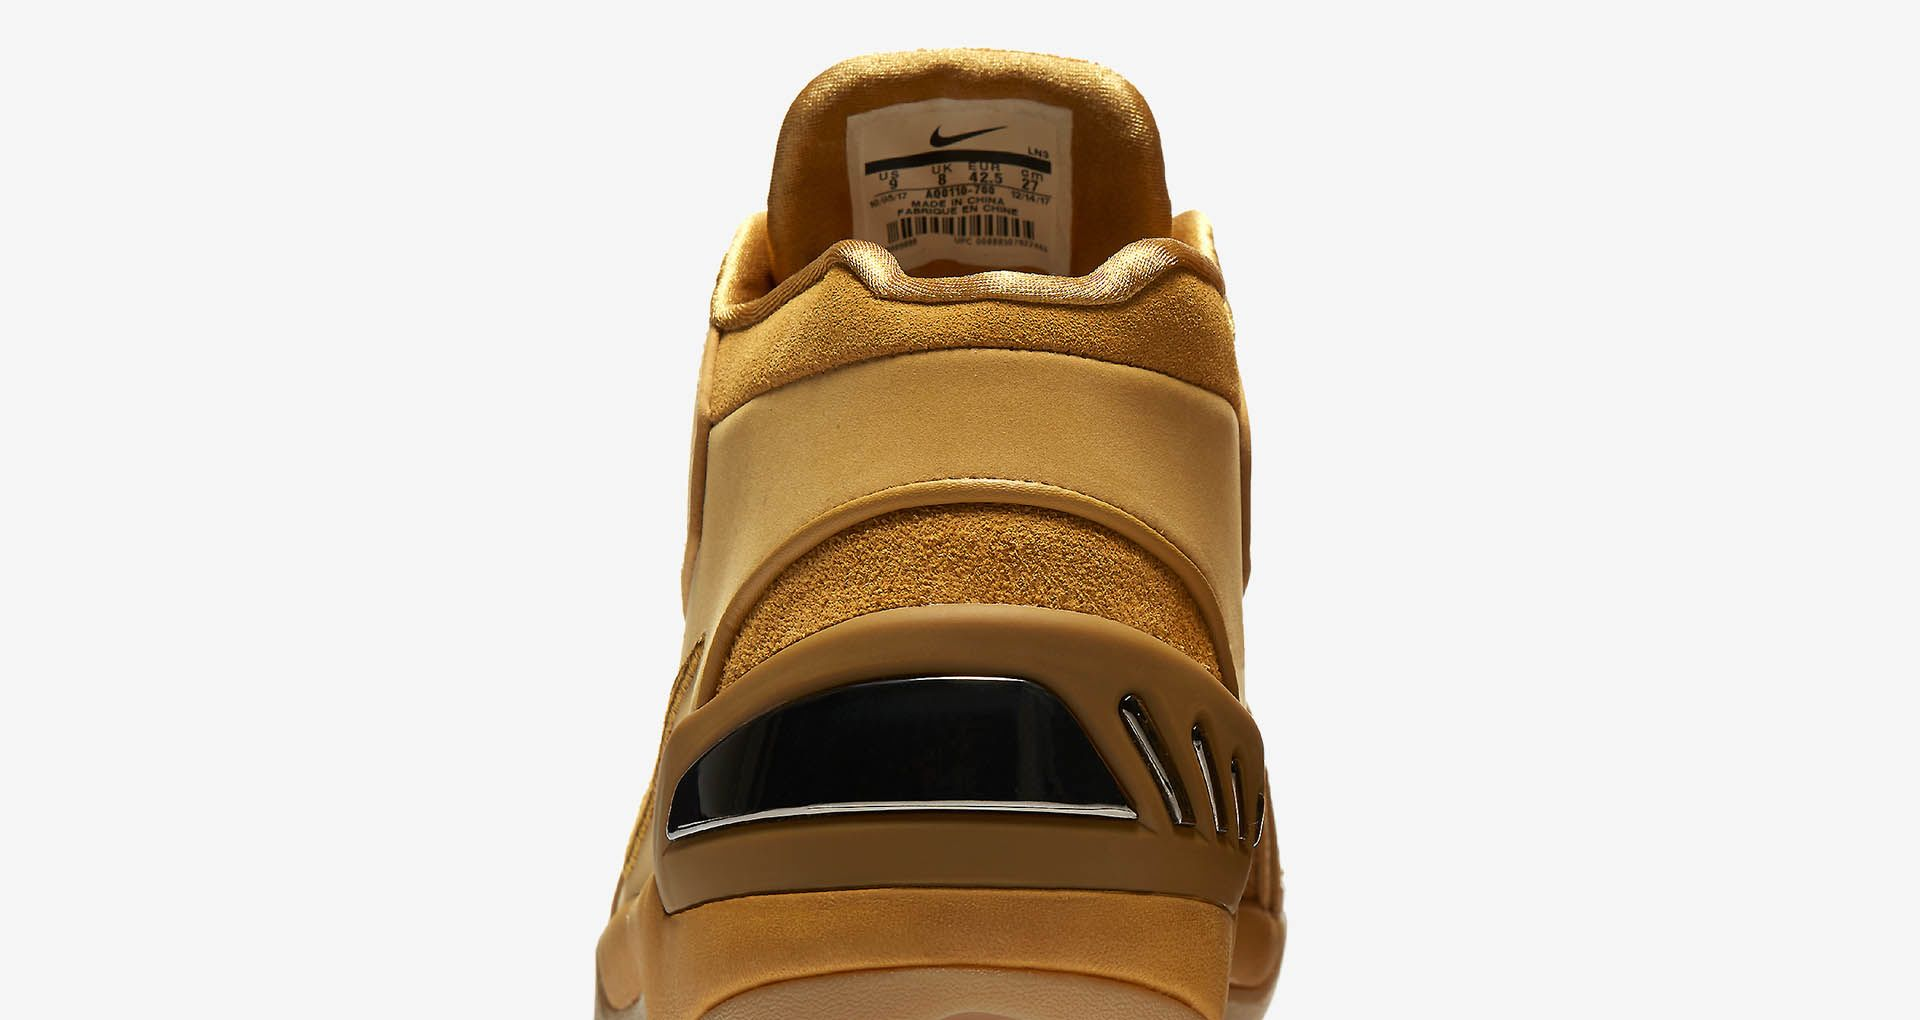 Nike Air Zoom Generation 'Wheat Gold' Release Date. Nike SNKRS